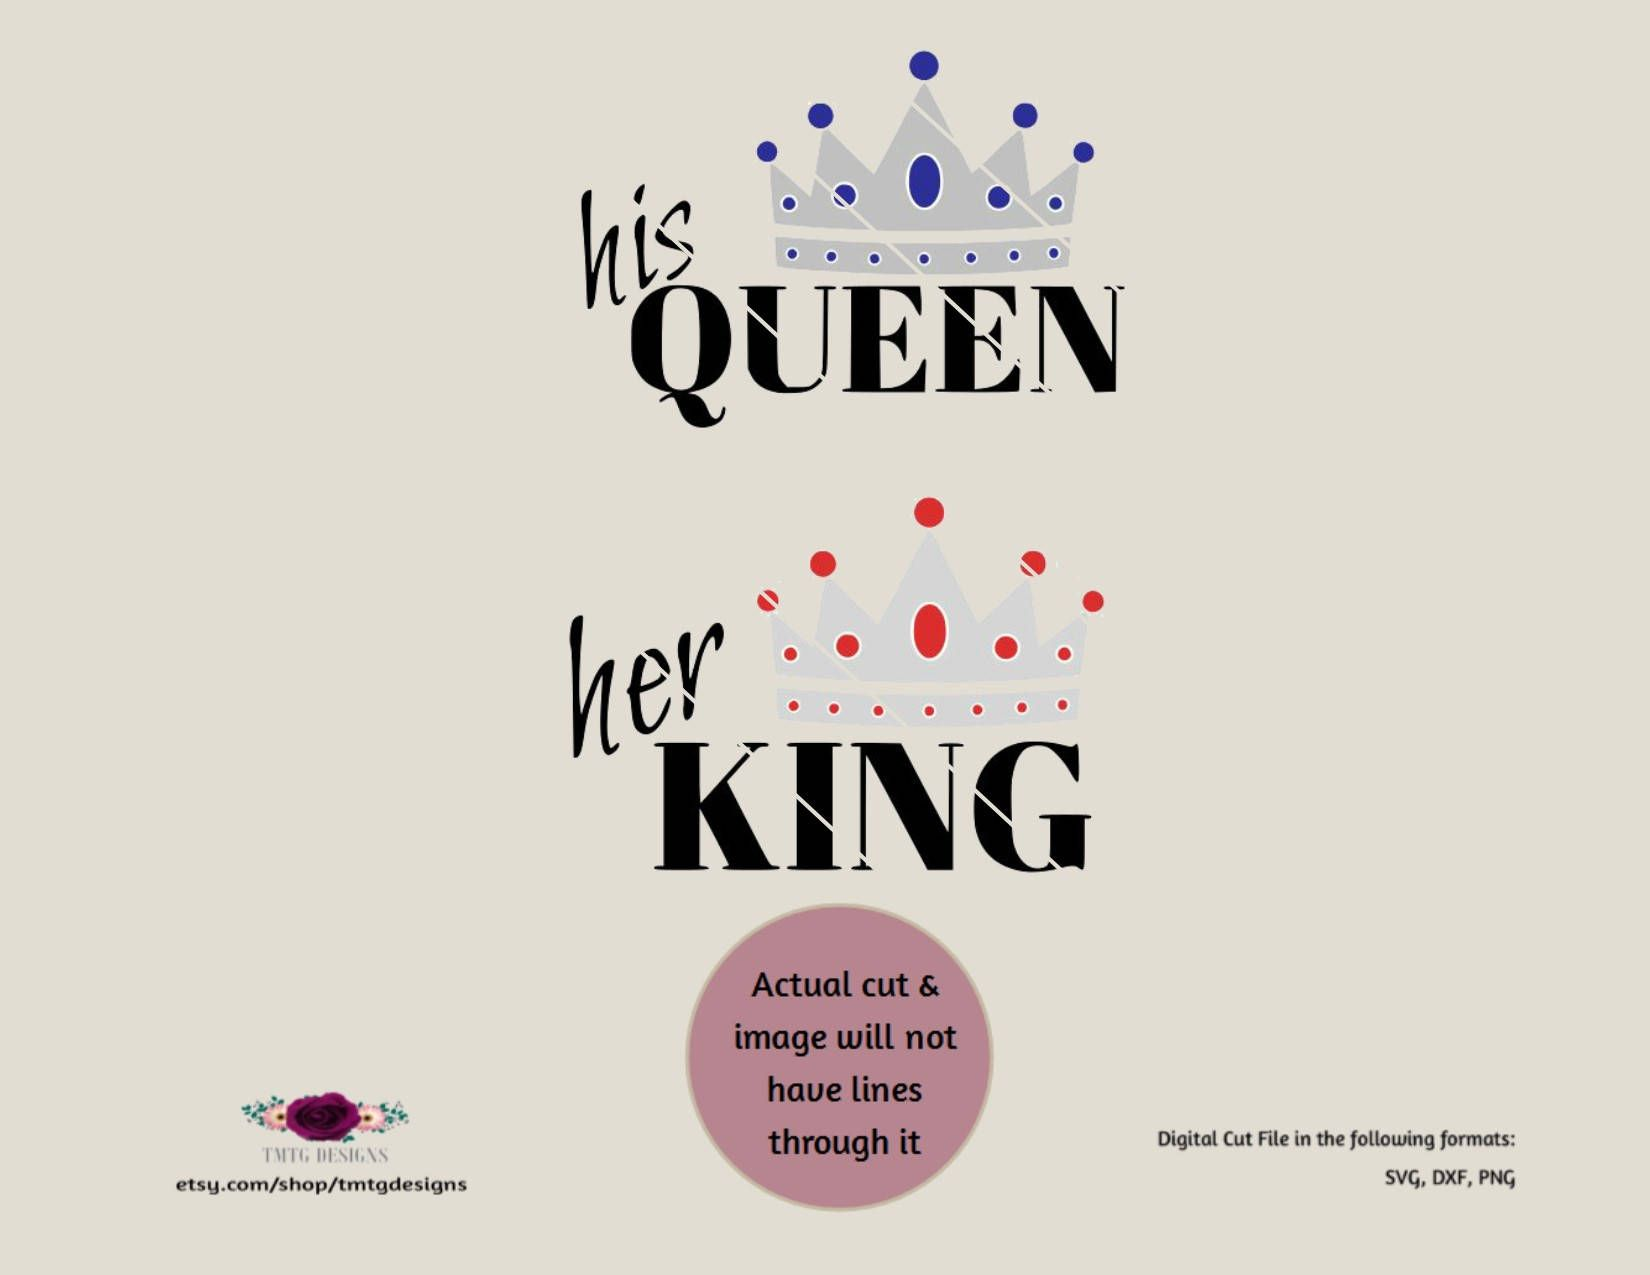 His Queen Her King Svg.Pin By Megan Gregory On Tmtgdesigns Cricut Cricut Explore Filing